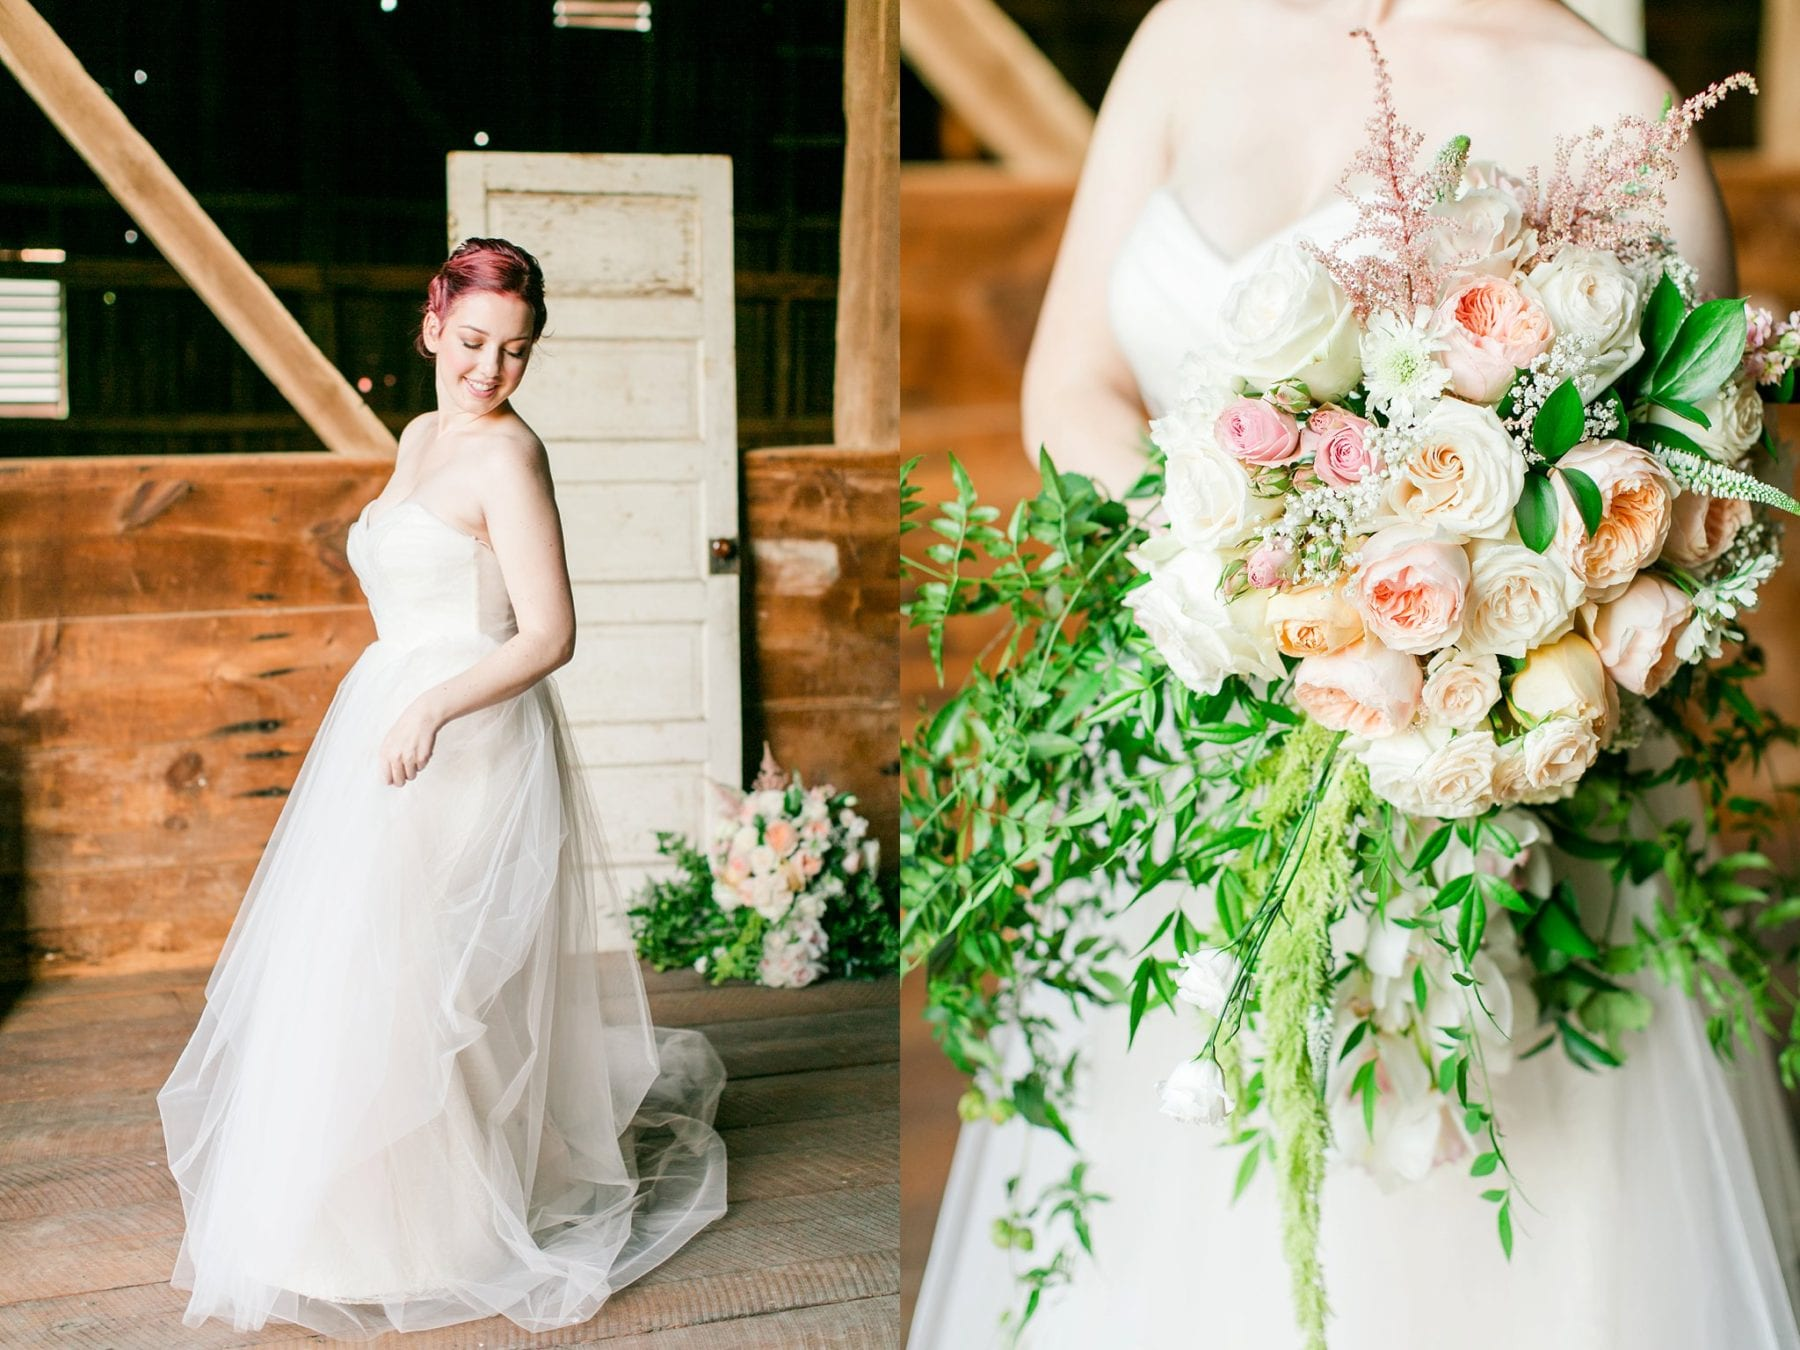 Rocklands Farm Wedding Virginia Wedding Photographer Megan Kelsey Photography Jessica & Jason-17.jpg